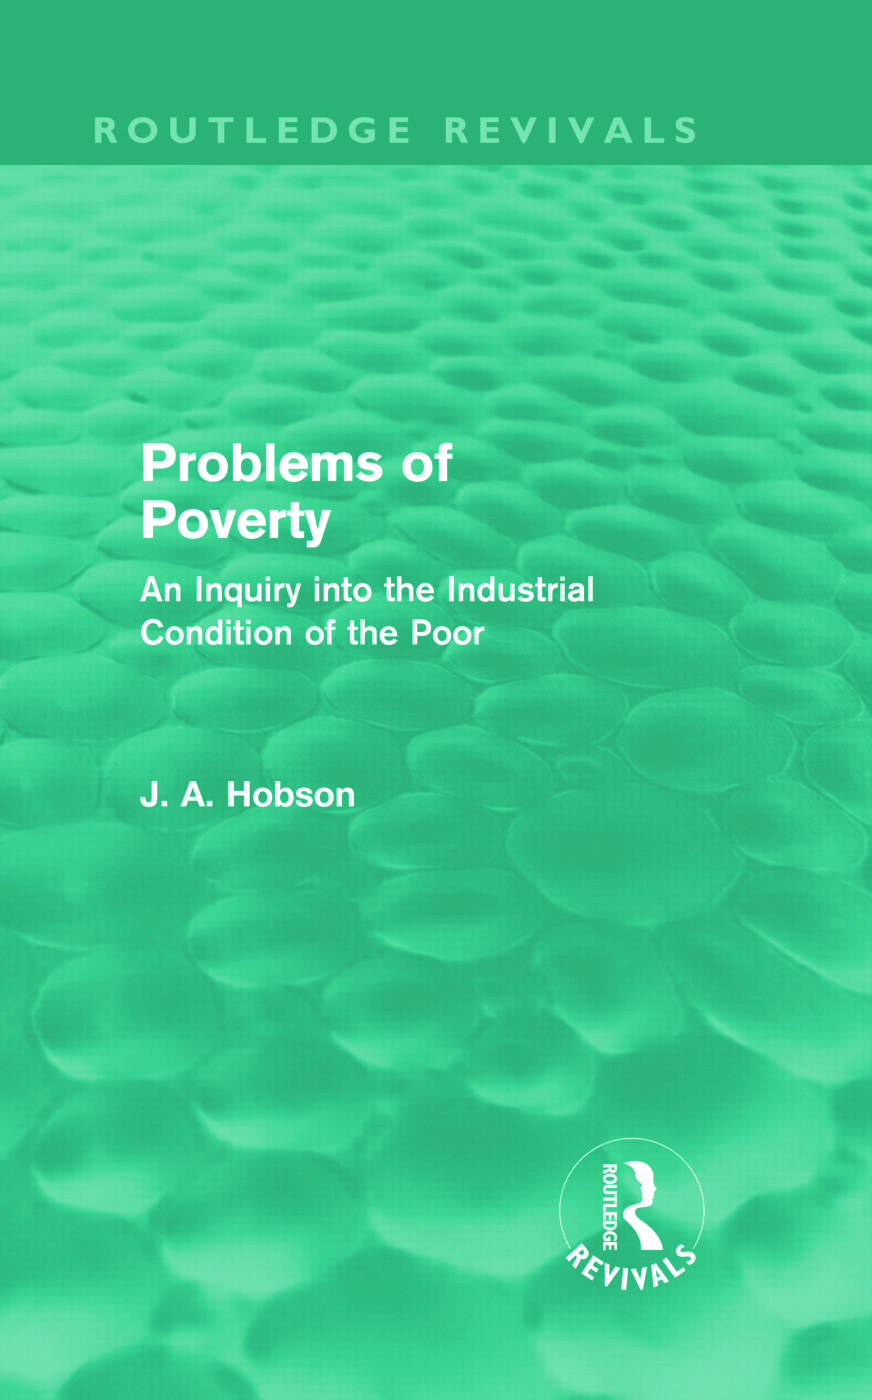 Problems of Poverty (Routledge Revivals): An Inquiry into the Industrial Condition of the Poor (Hardback) book cover